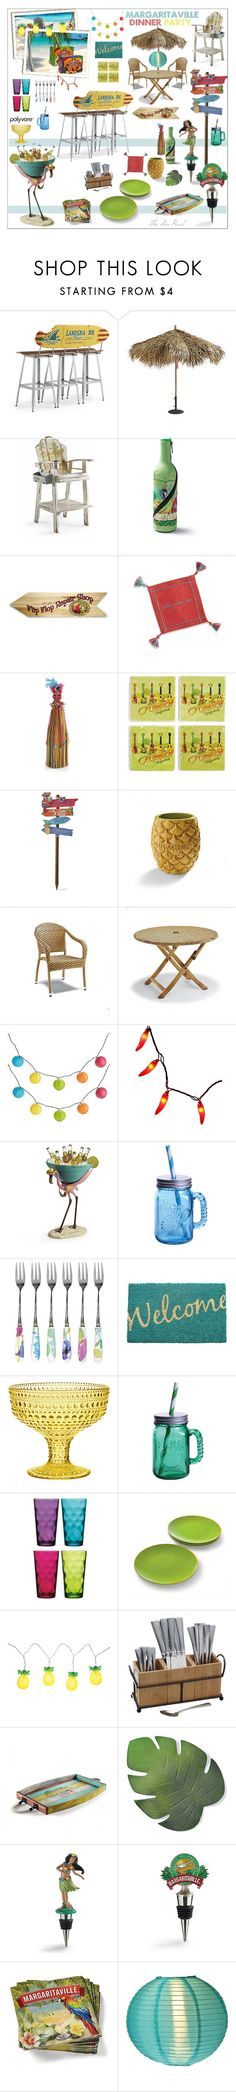 """Margaritaville Dinner Party!"" by theseapearl ❤ liked on Polyvore featuring interior, interiors, interior design, home, home decor, interior decorating, Frontgate, Pier 1 Imports, Fitz and Floyd and Portmeirion"